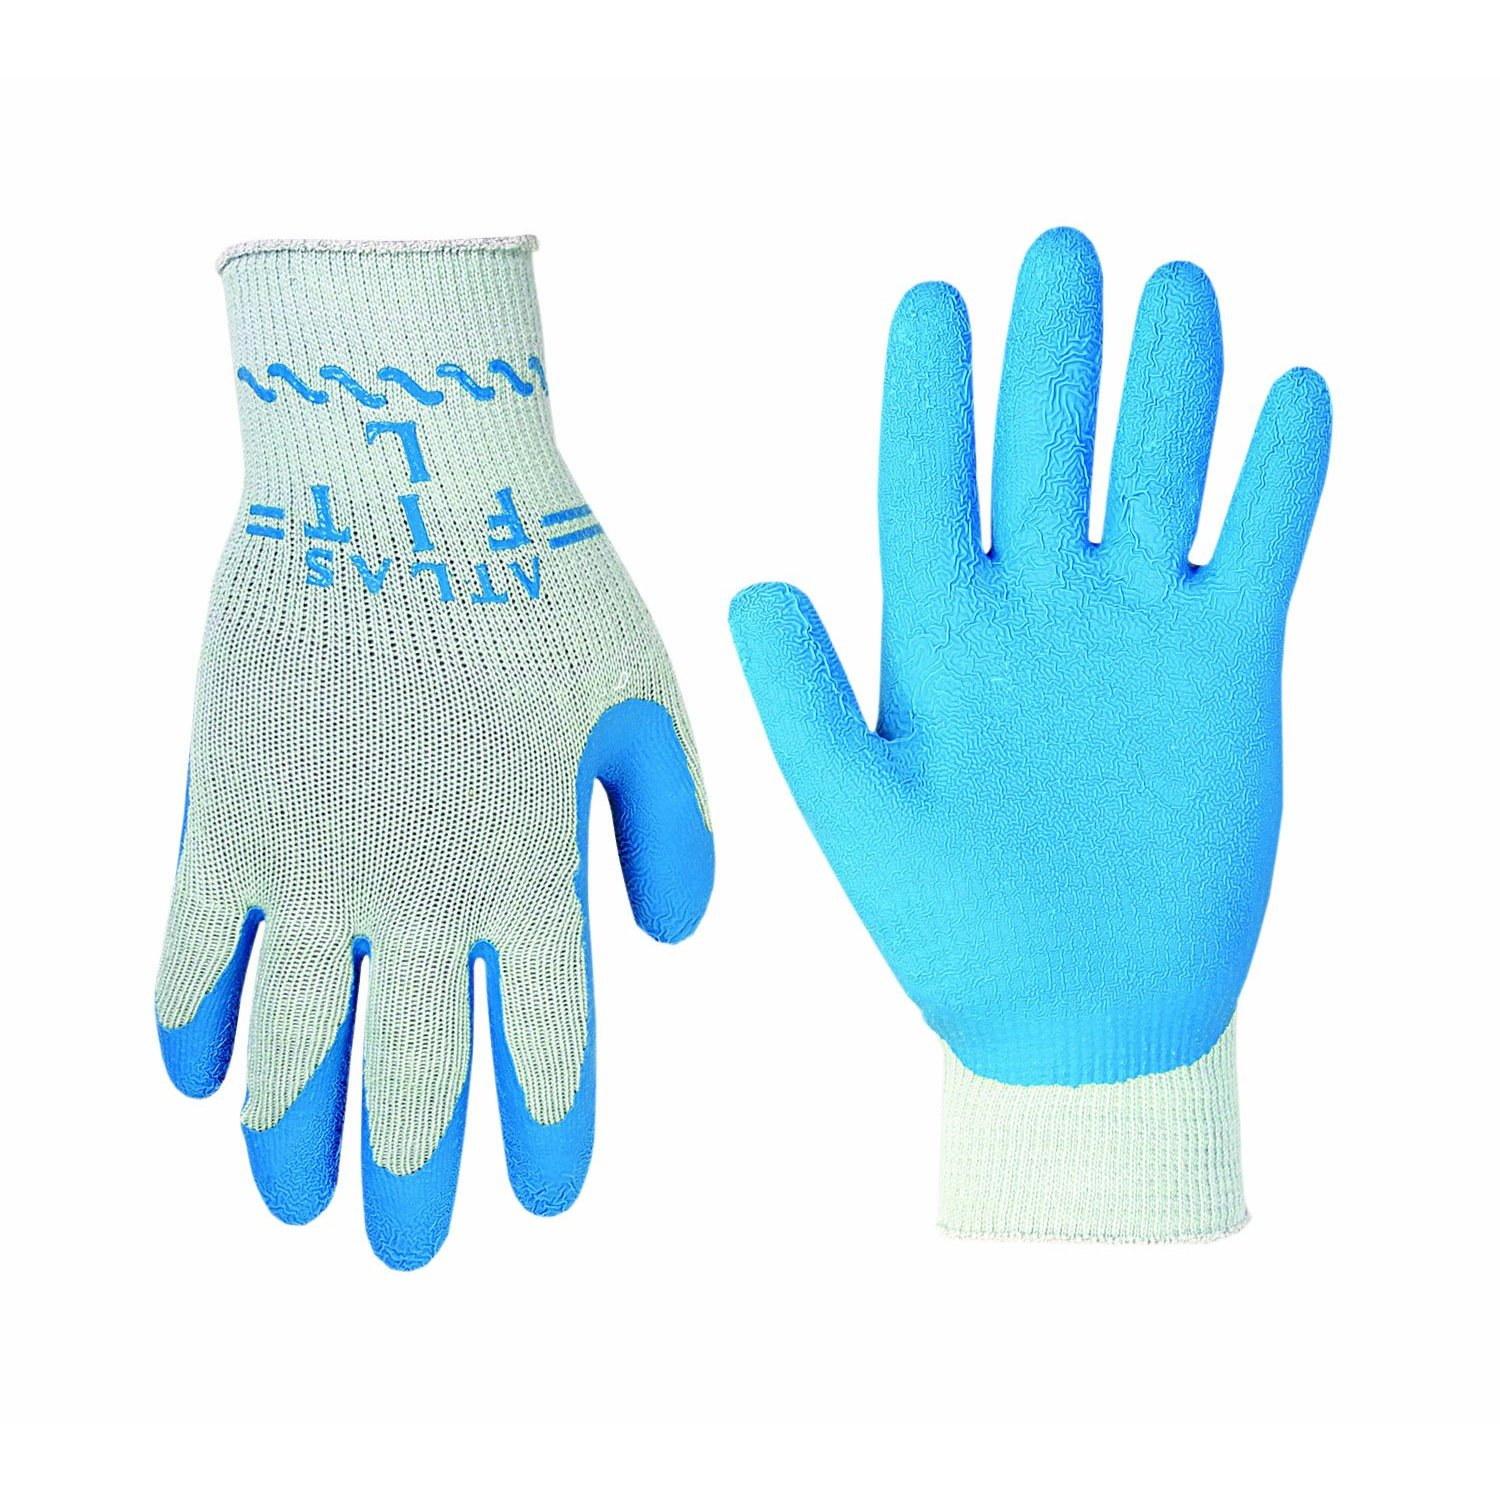 Atlas 300L Atlas Fit 300 Work Gloves, Large [Tools & Home Improvement]